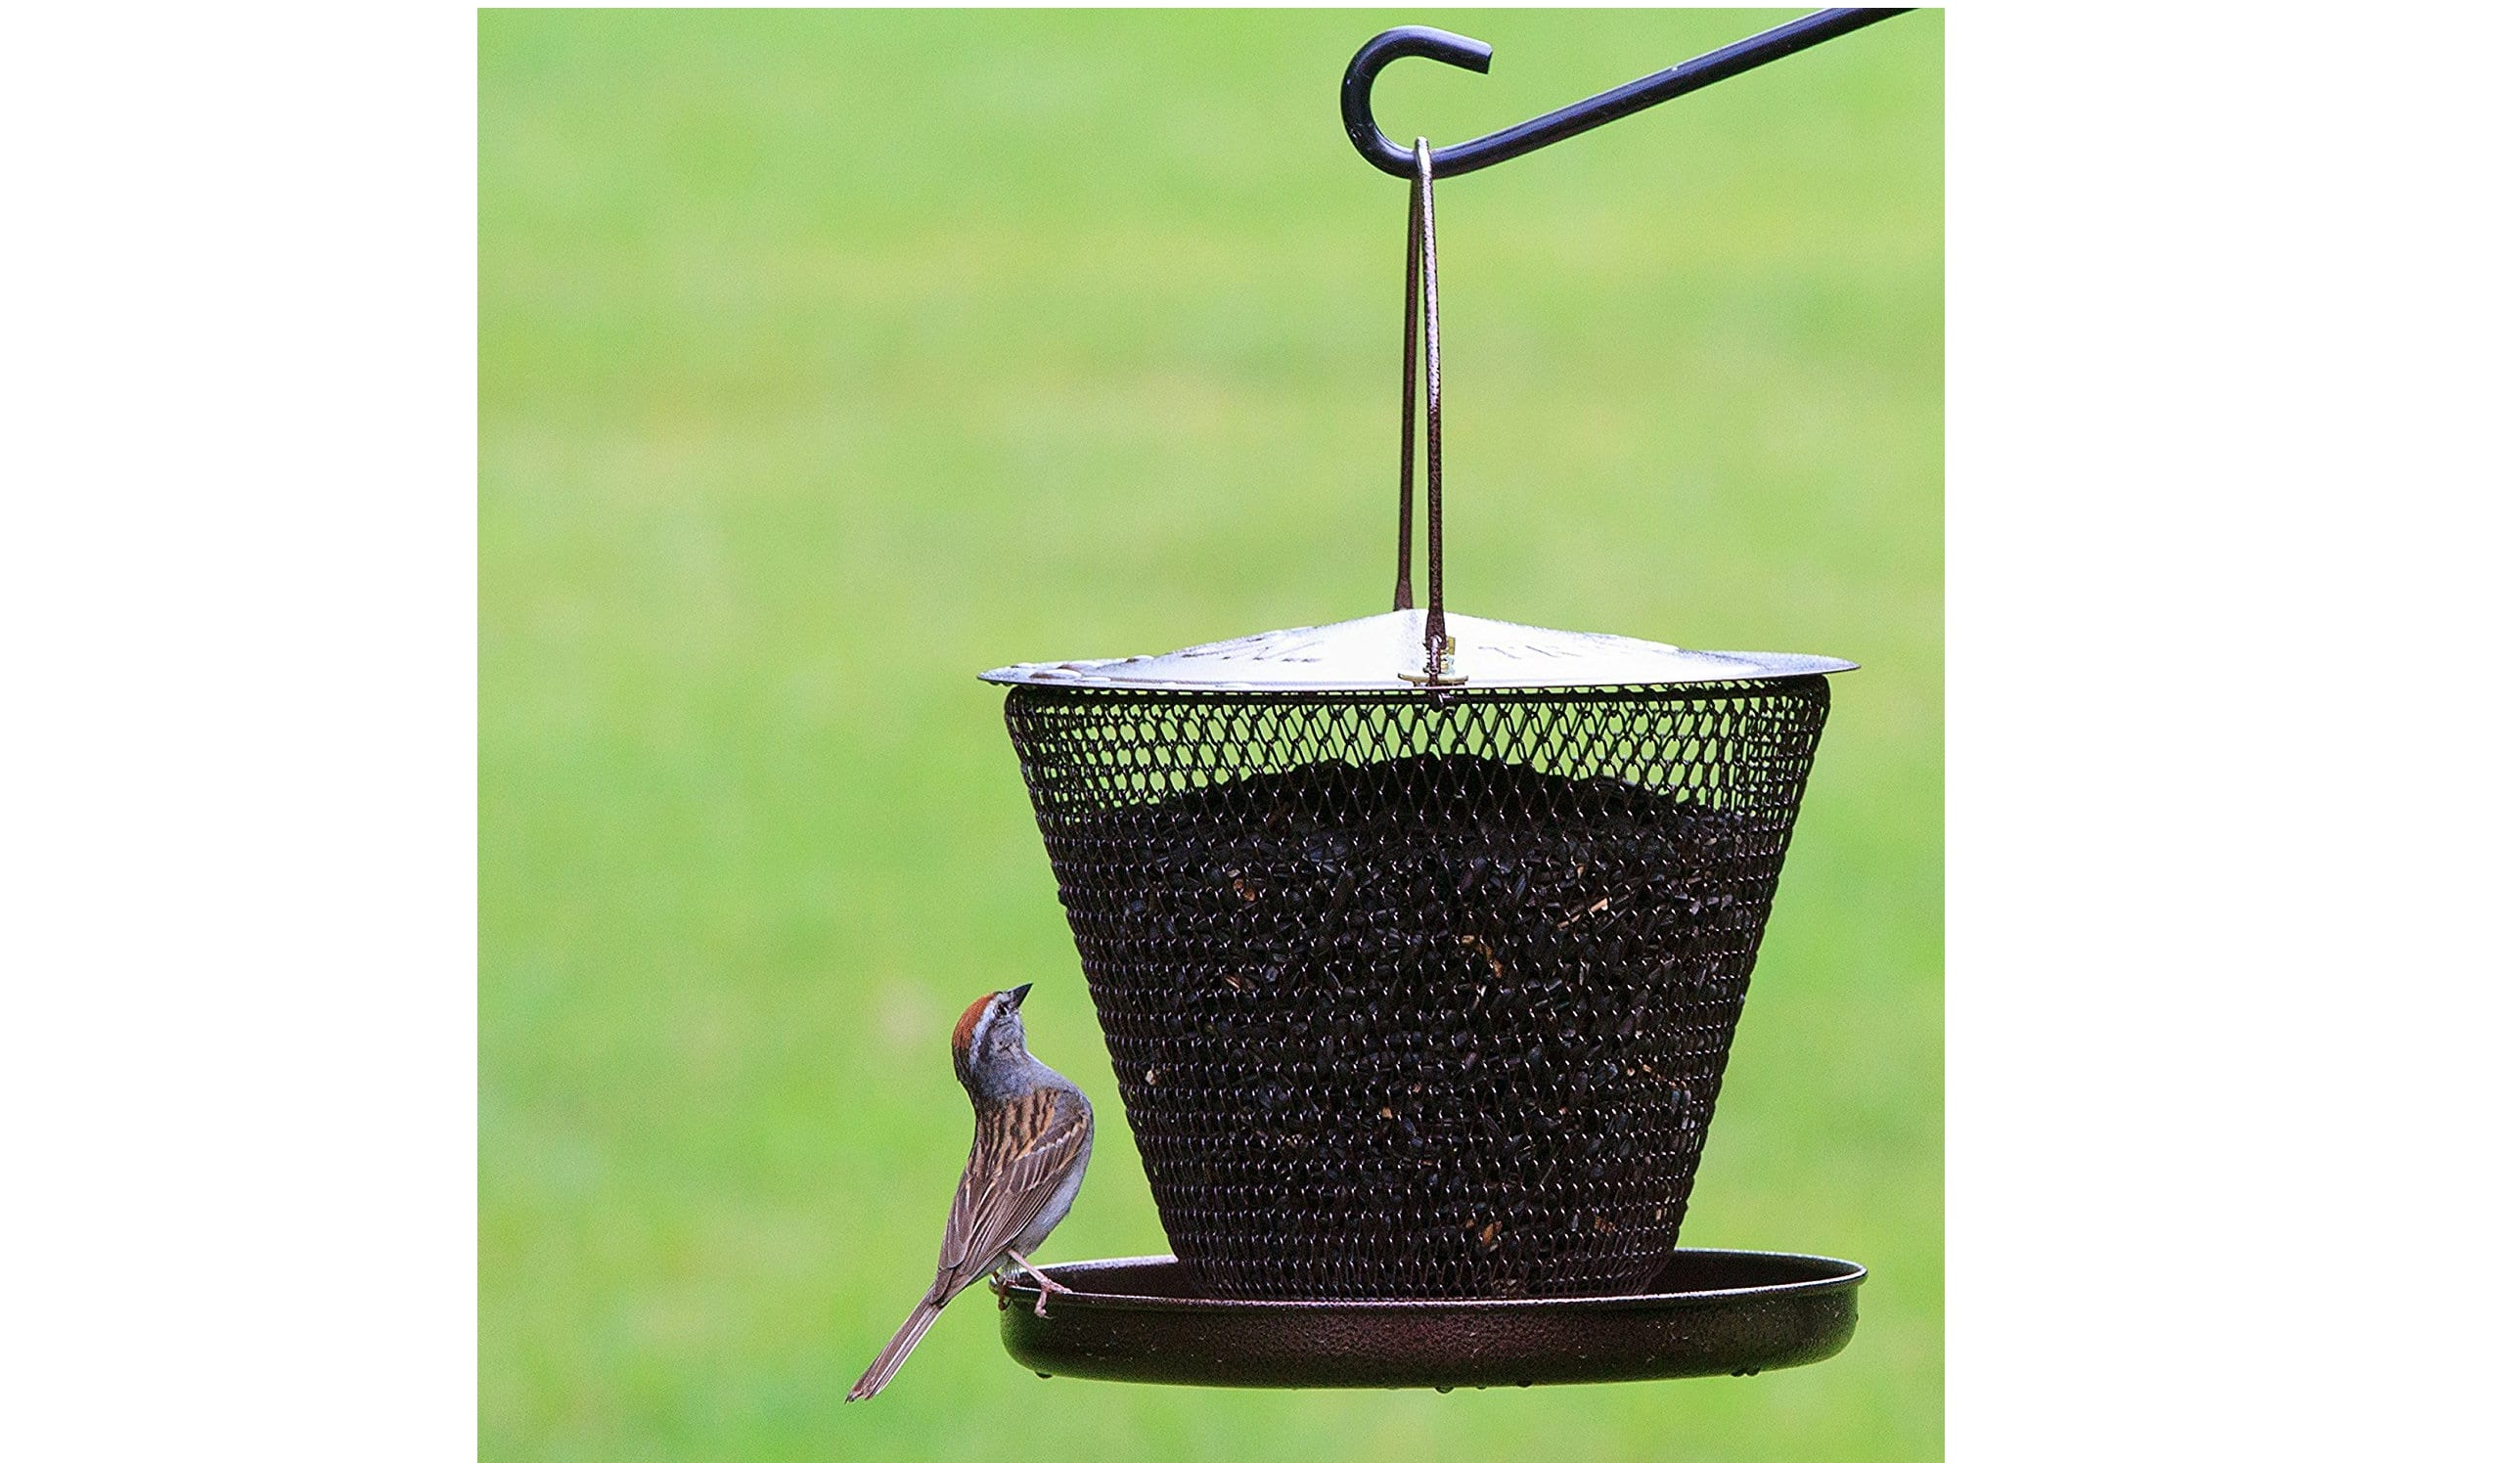 solar bird feeder case analysis 7 things you should never do to your dog more slideshows from petmd 8 ways to help dogs with back pain 8 dog car safety mistakes to avoid 6.